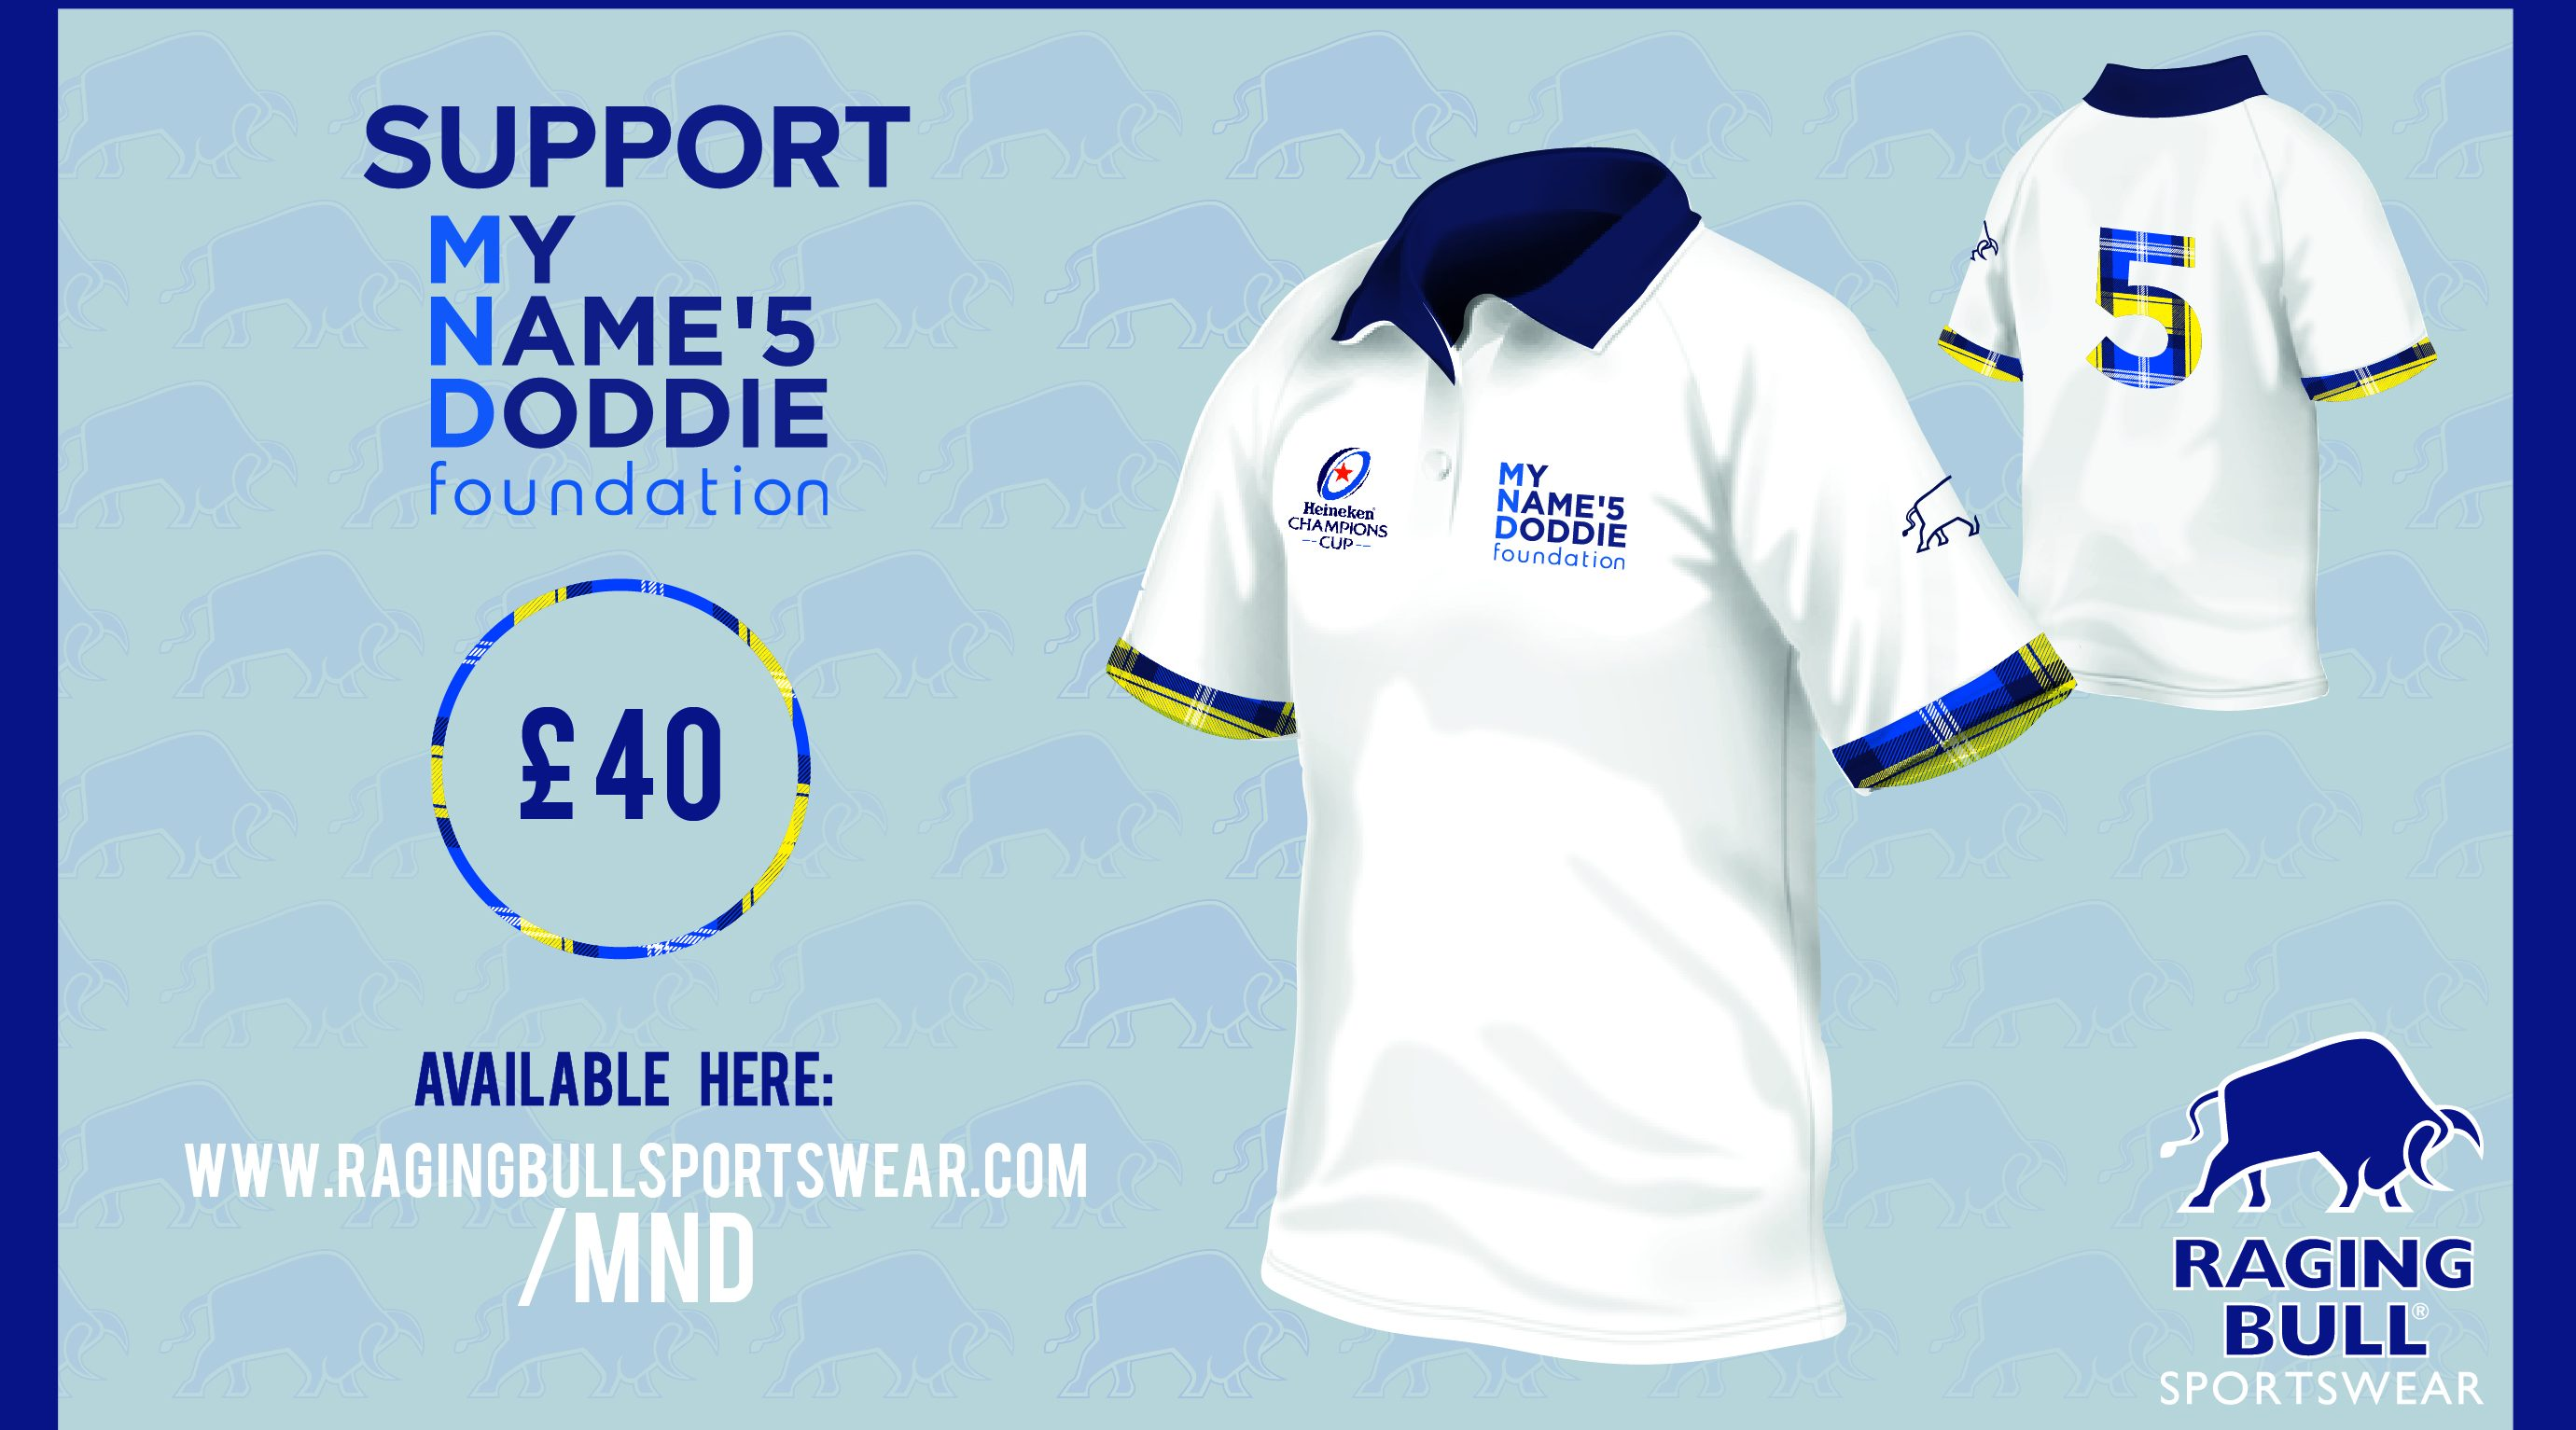 Get your My Name'5 Doddie Foundation polo shirt now!